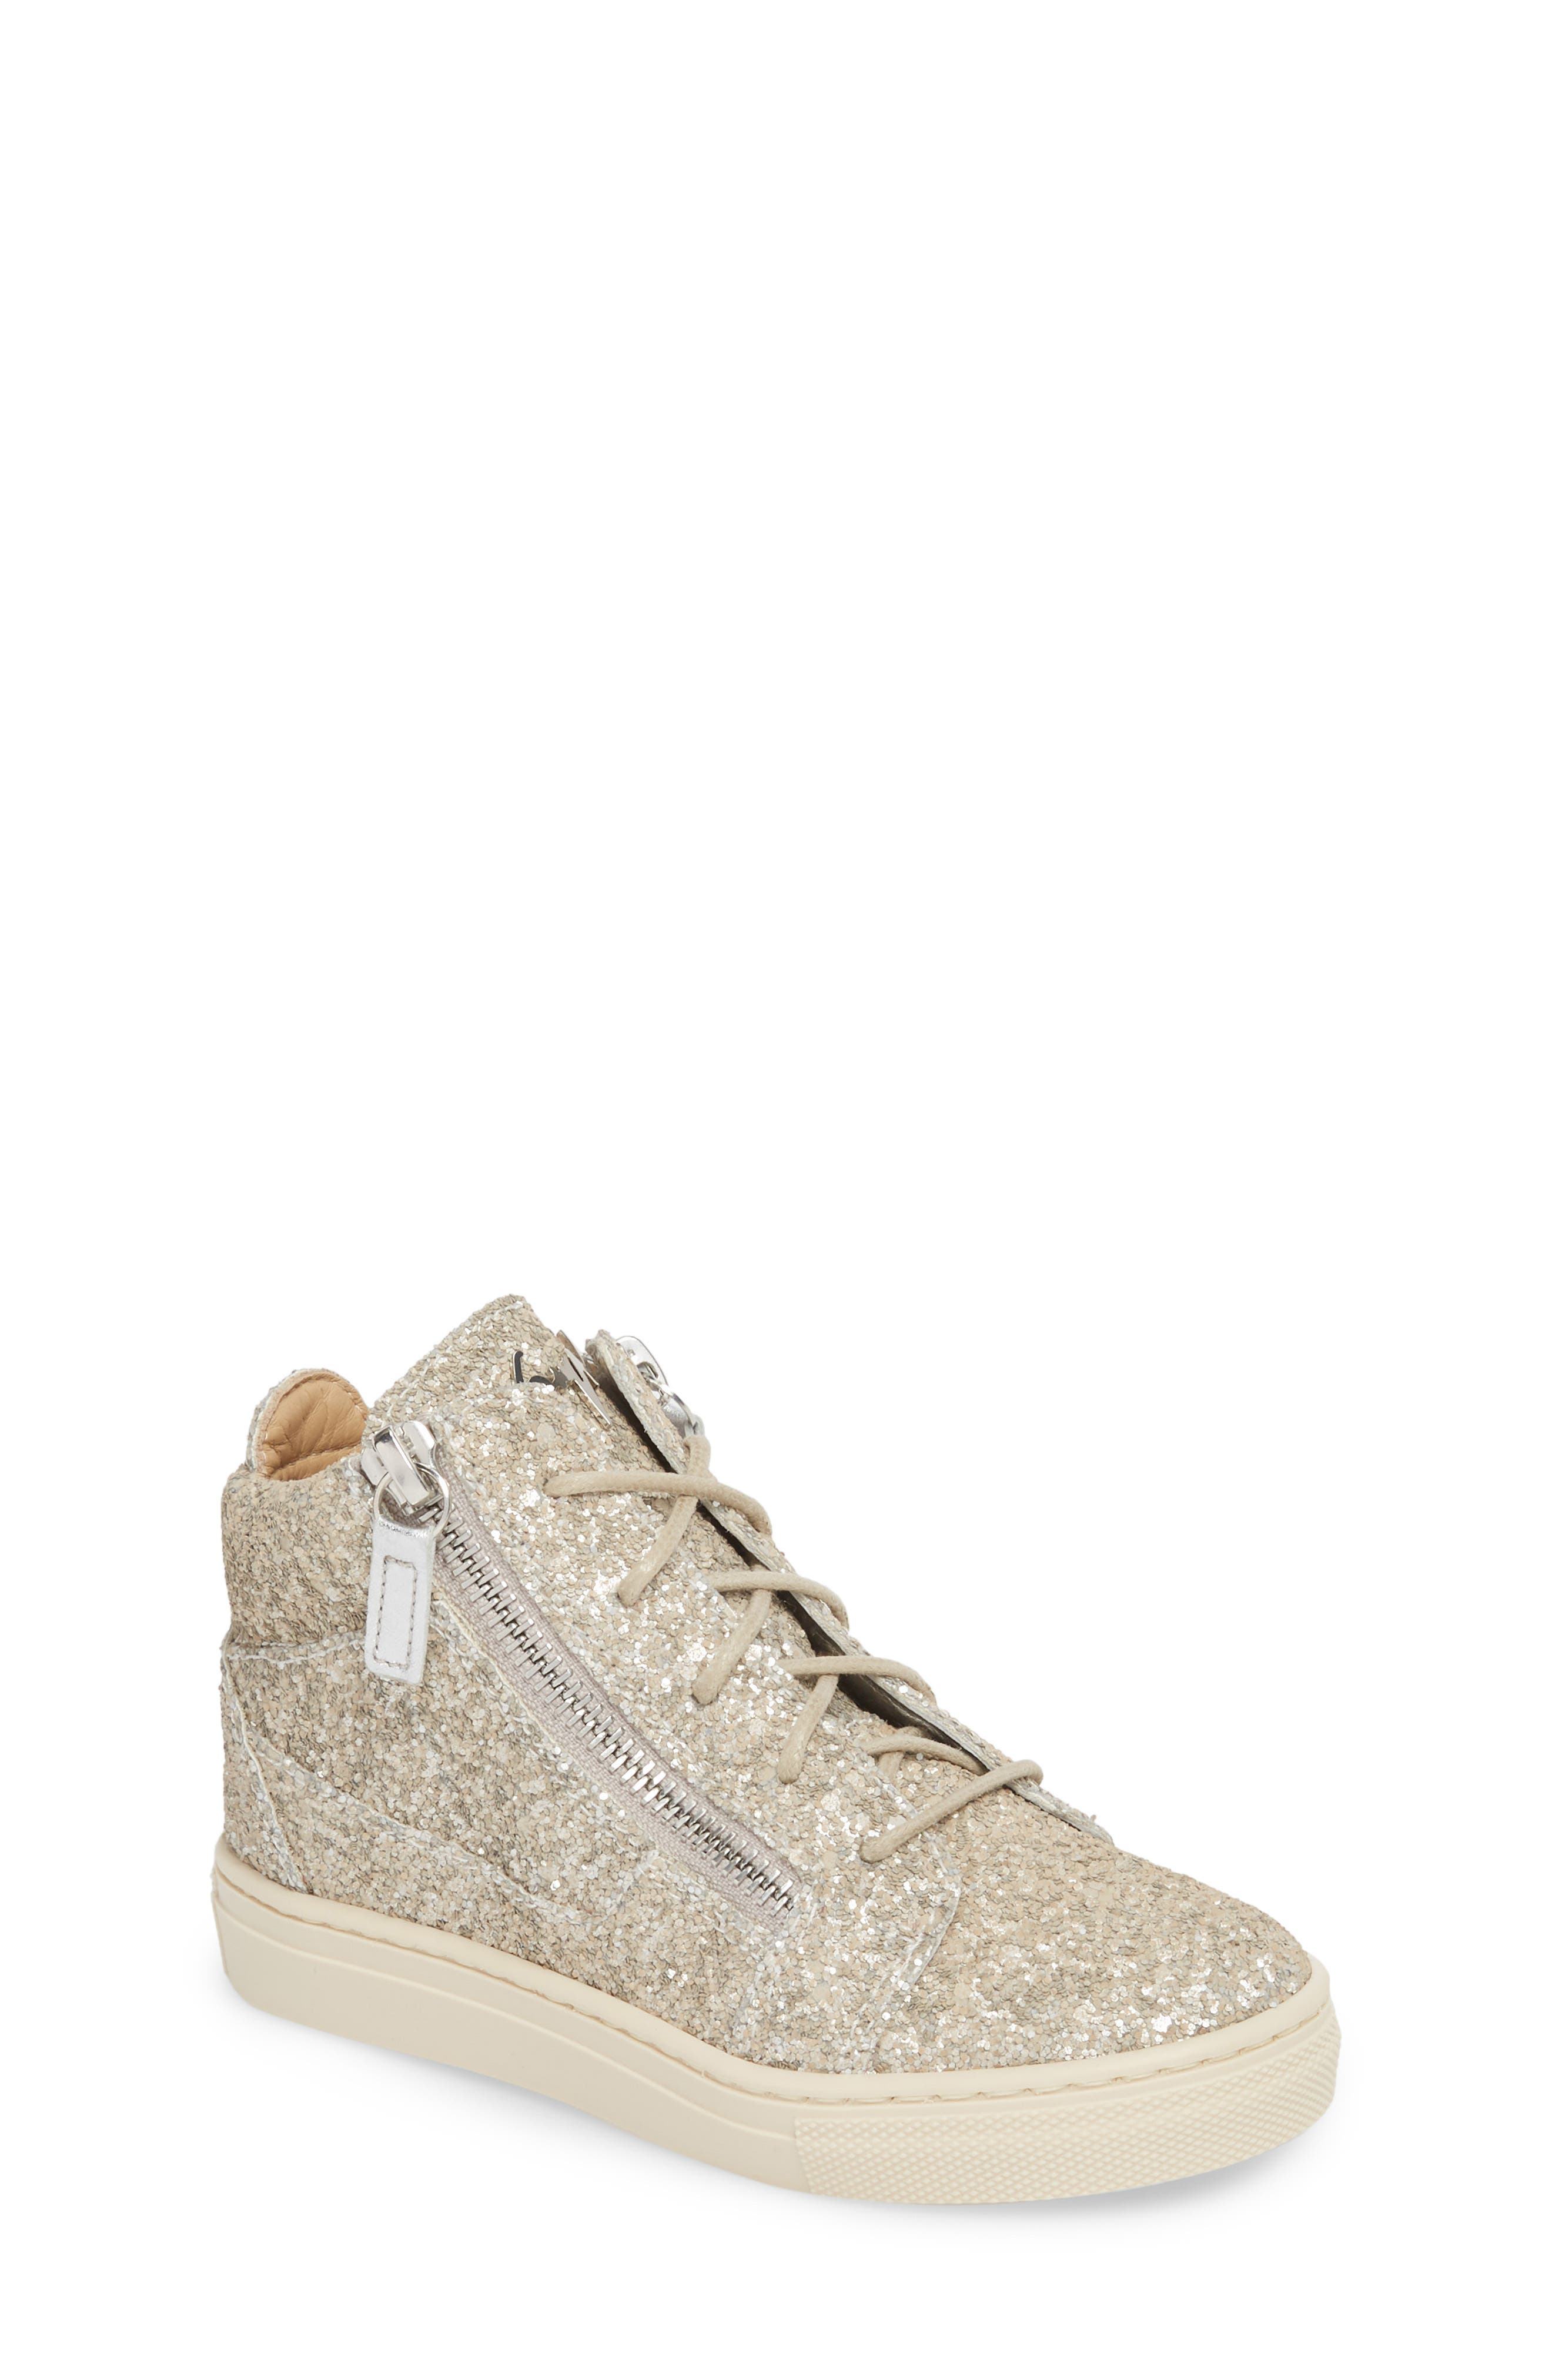 Giuseppe Zanotti Natalie High Top Sneaker (Baby, Walker, Toddler & Little Kid)